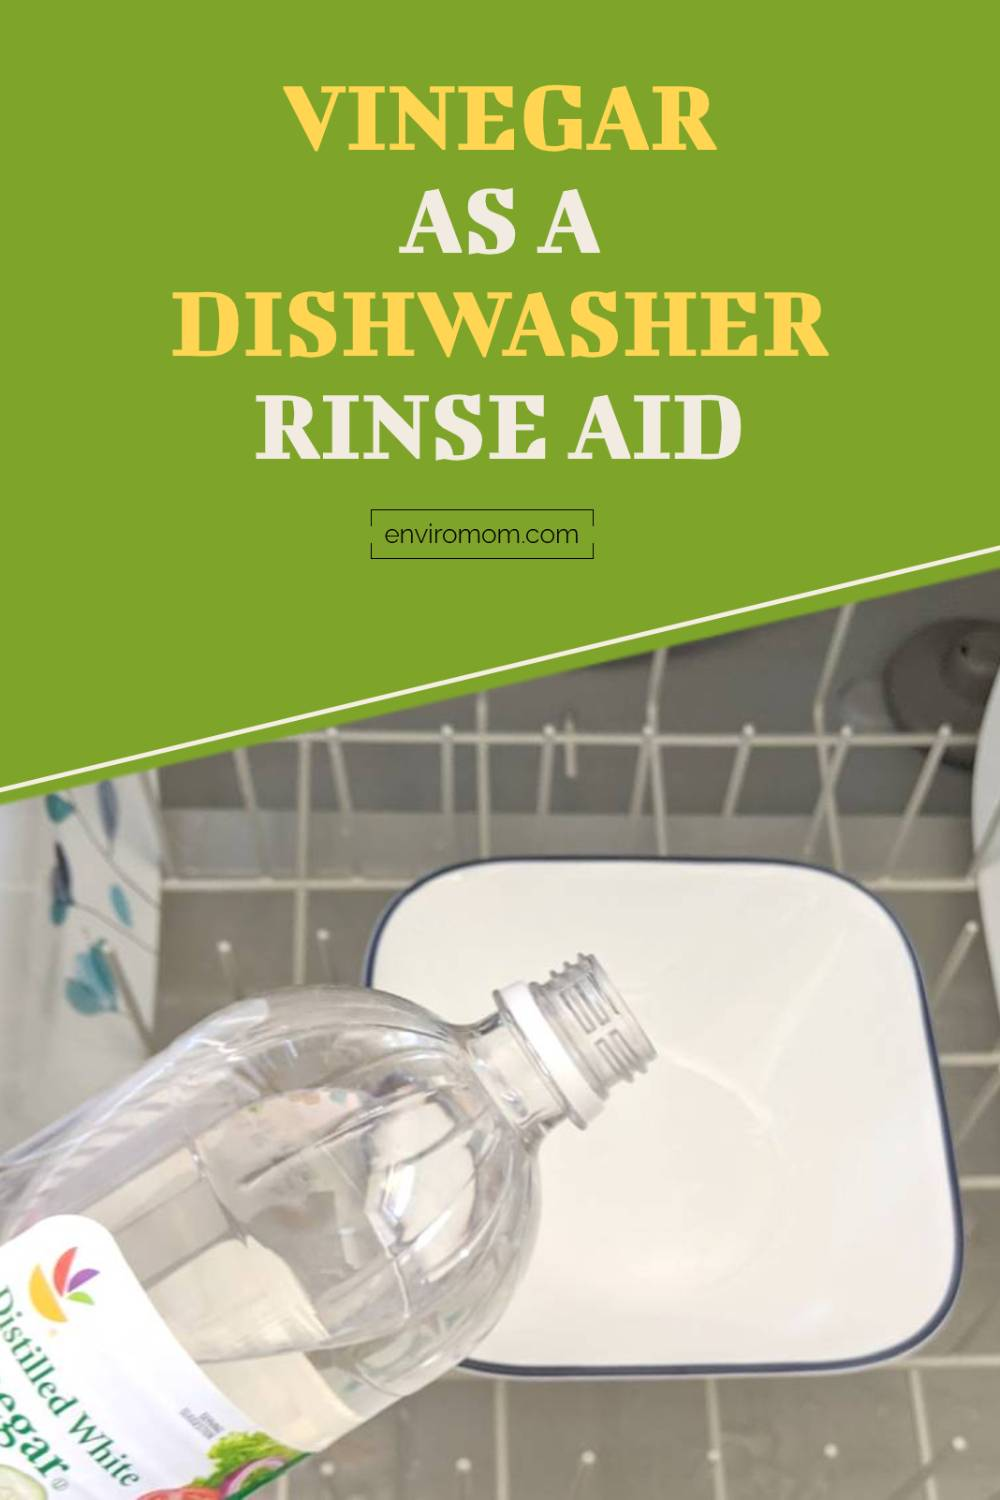 Everything you need to know about vinegar as a dishwasher rinse aid.